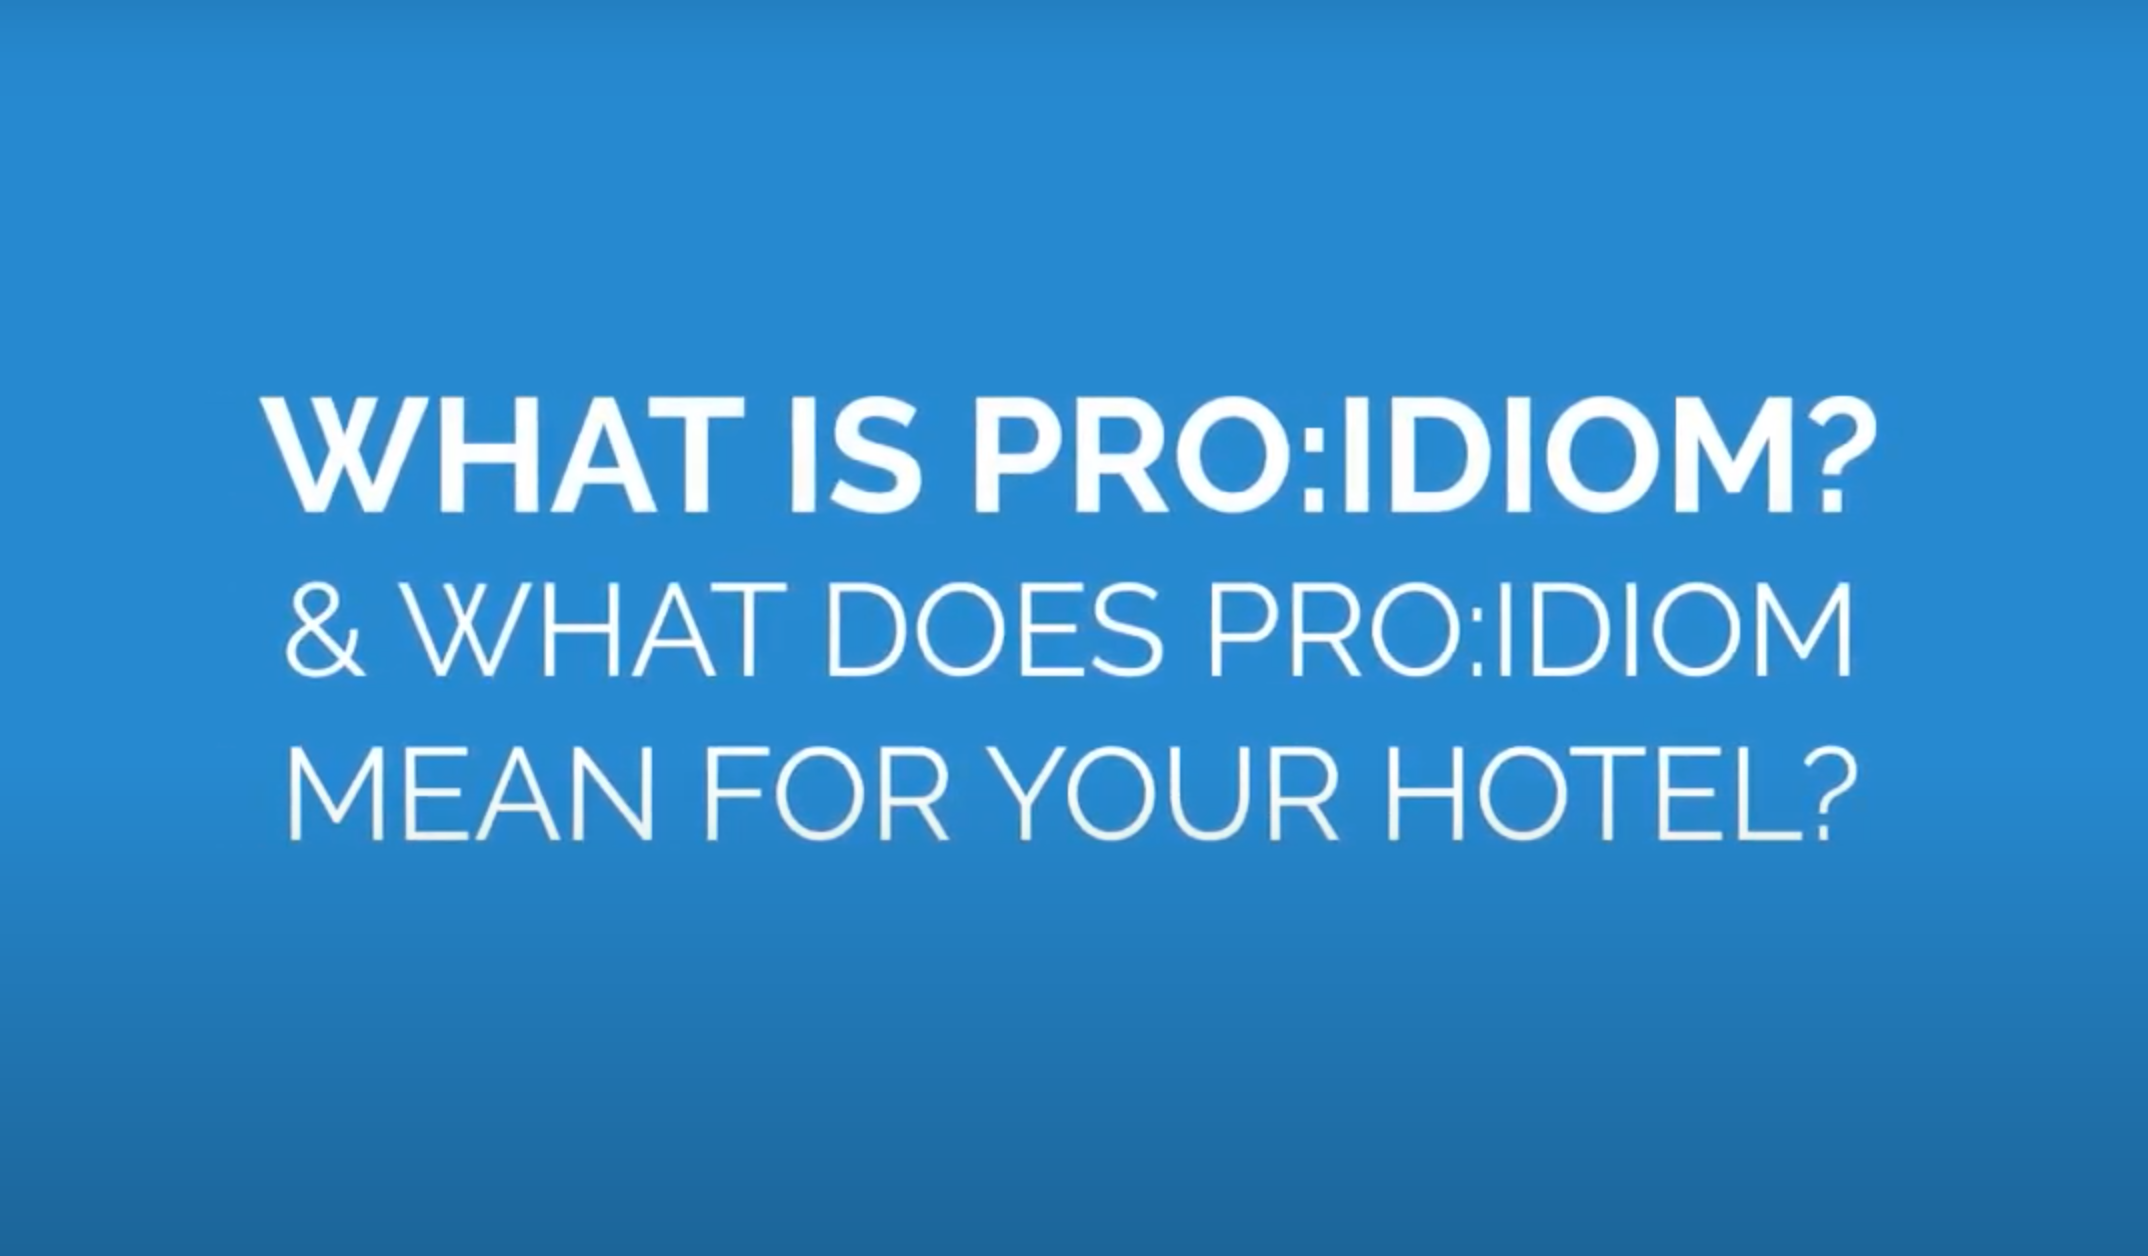 What is Pro:Idiom?